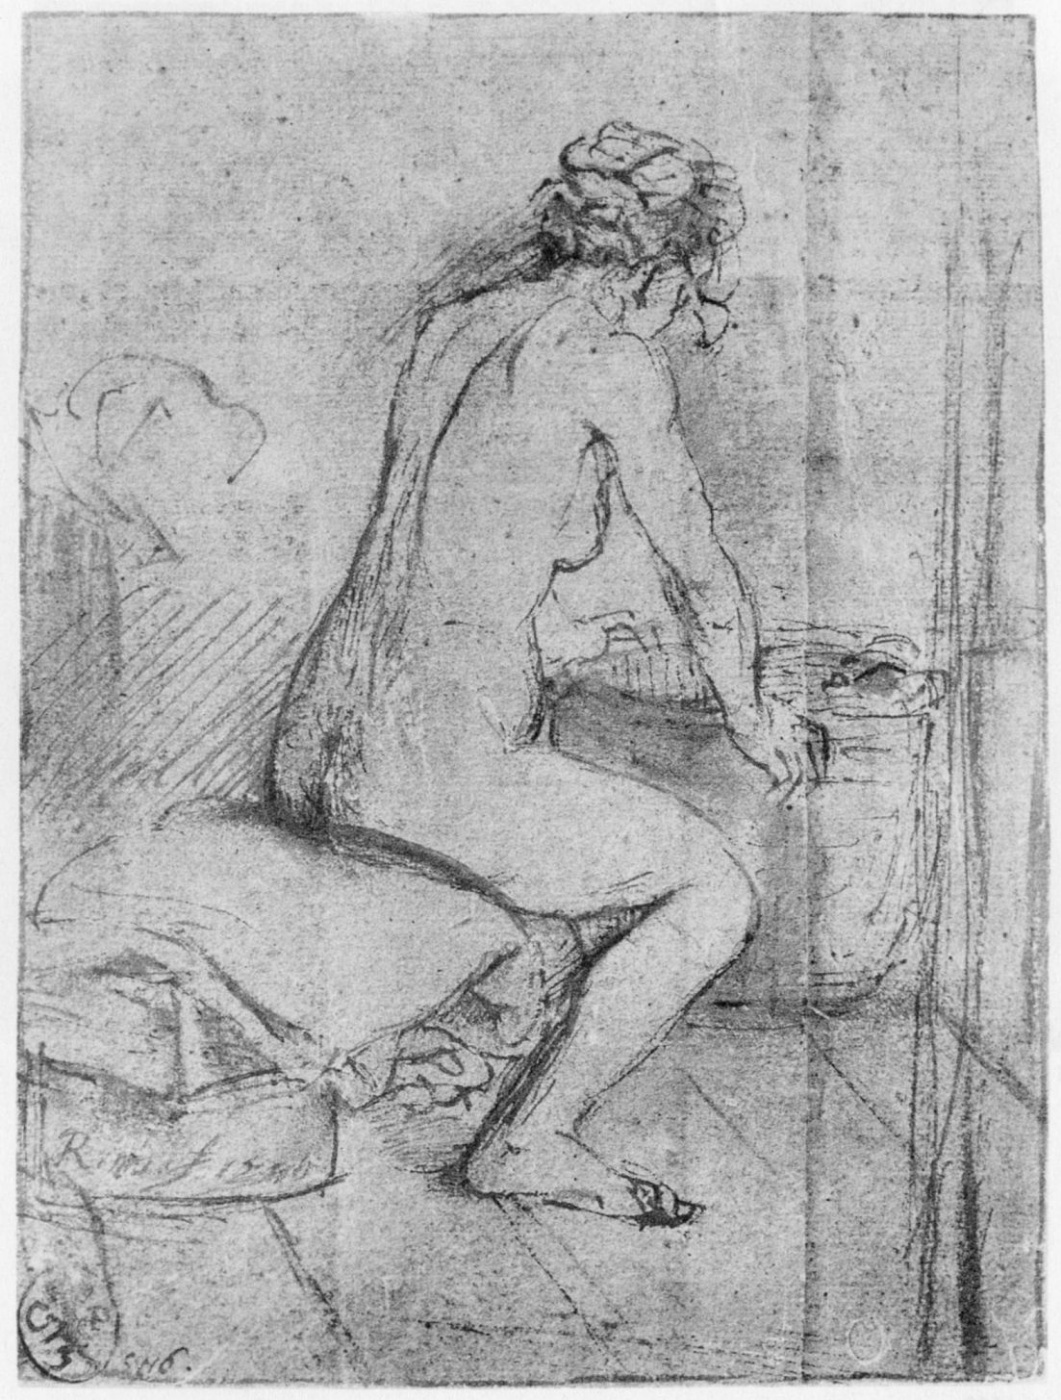 Rembrandt Harmenszoon van Rijn. Nude artist's model, leaning his hands on the cart